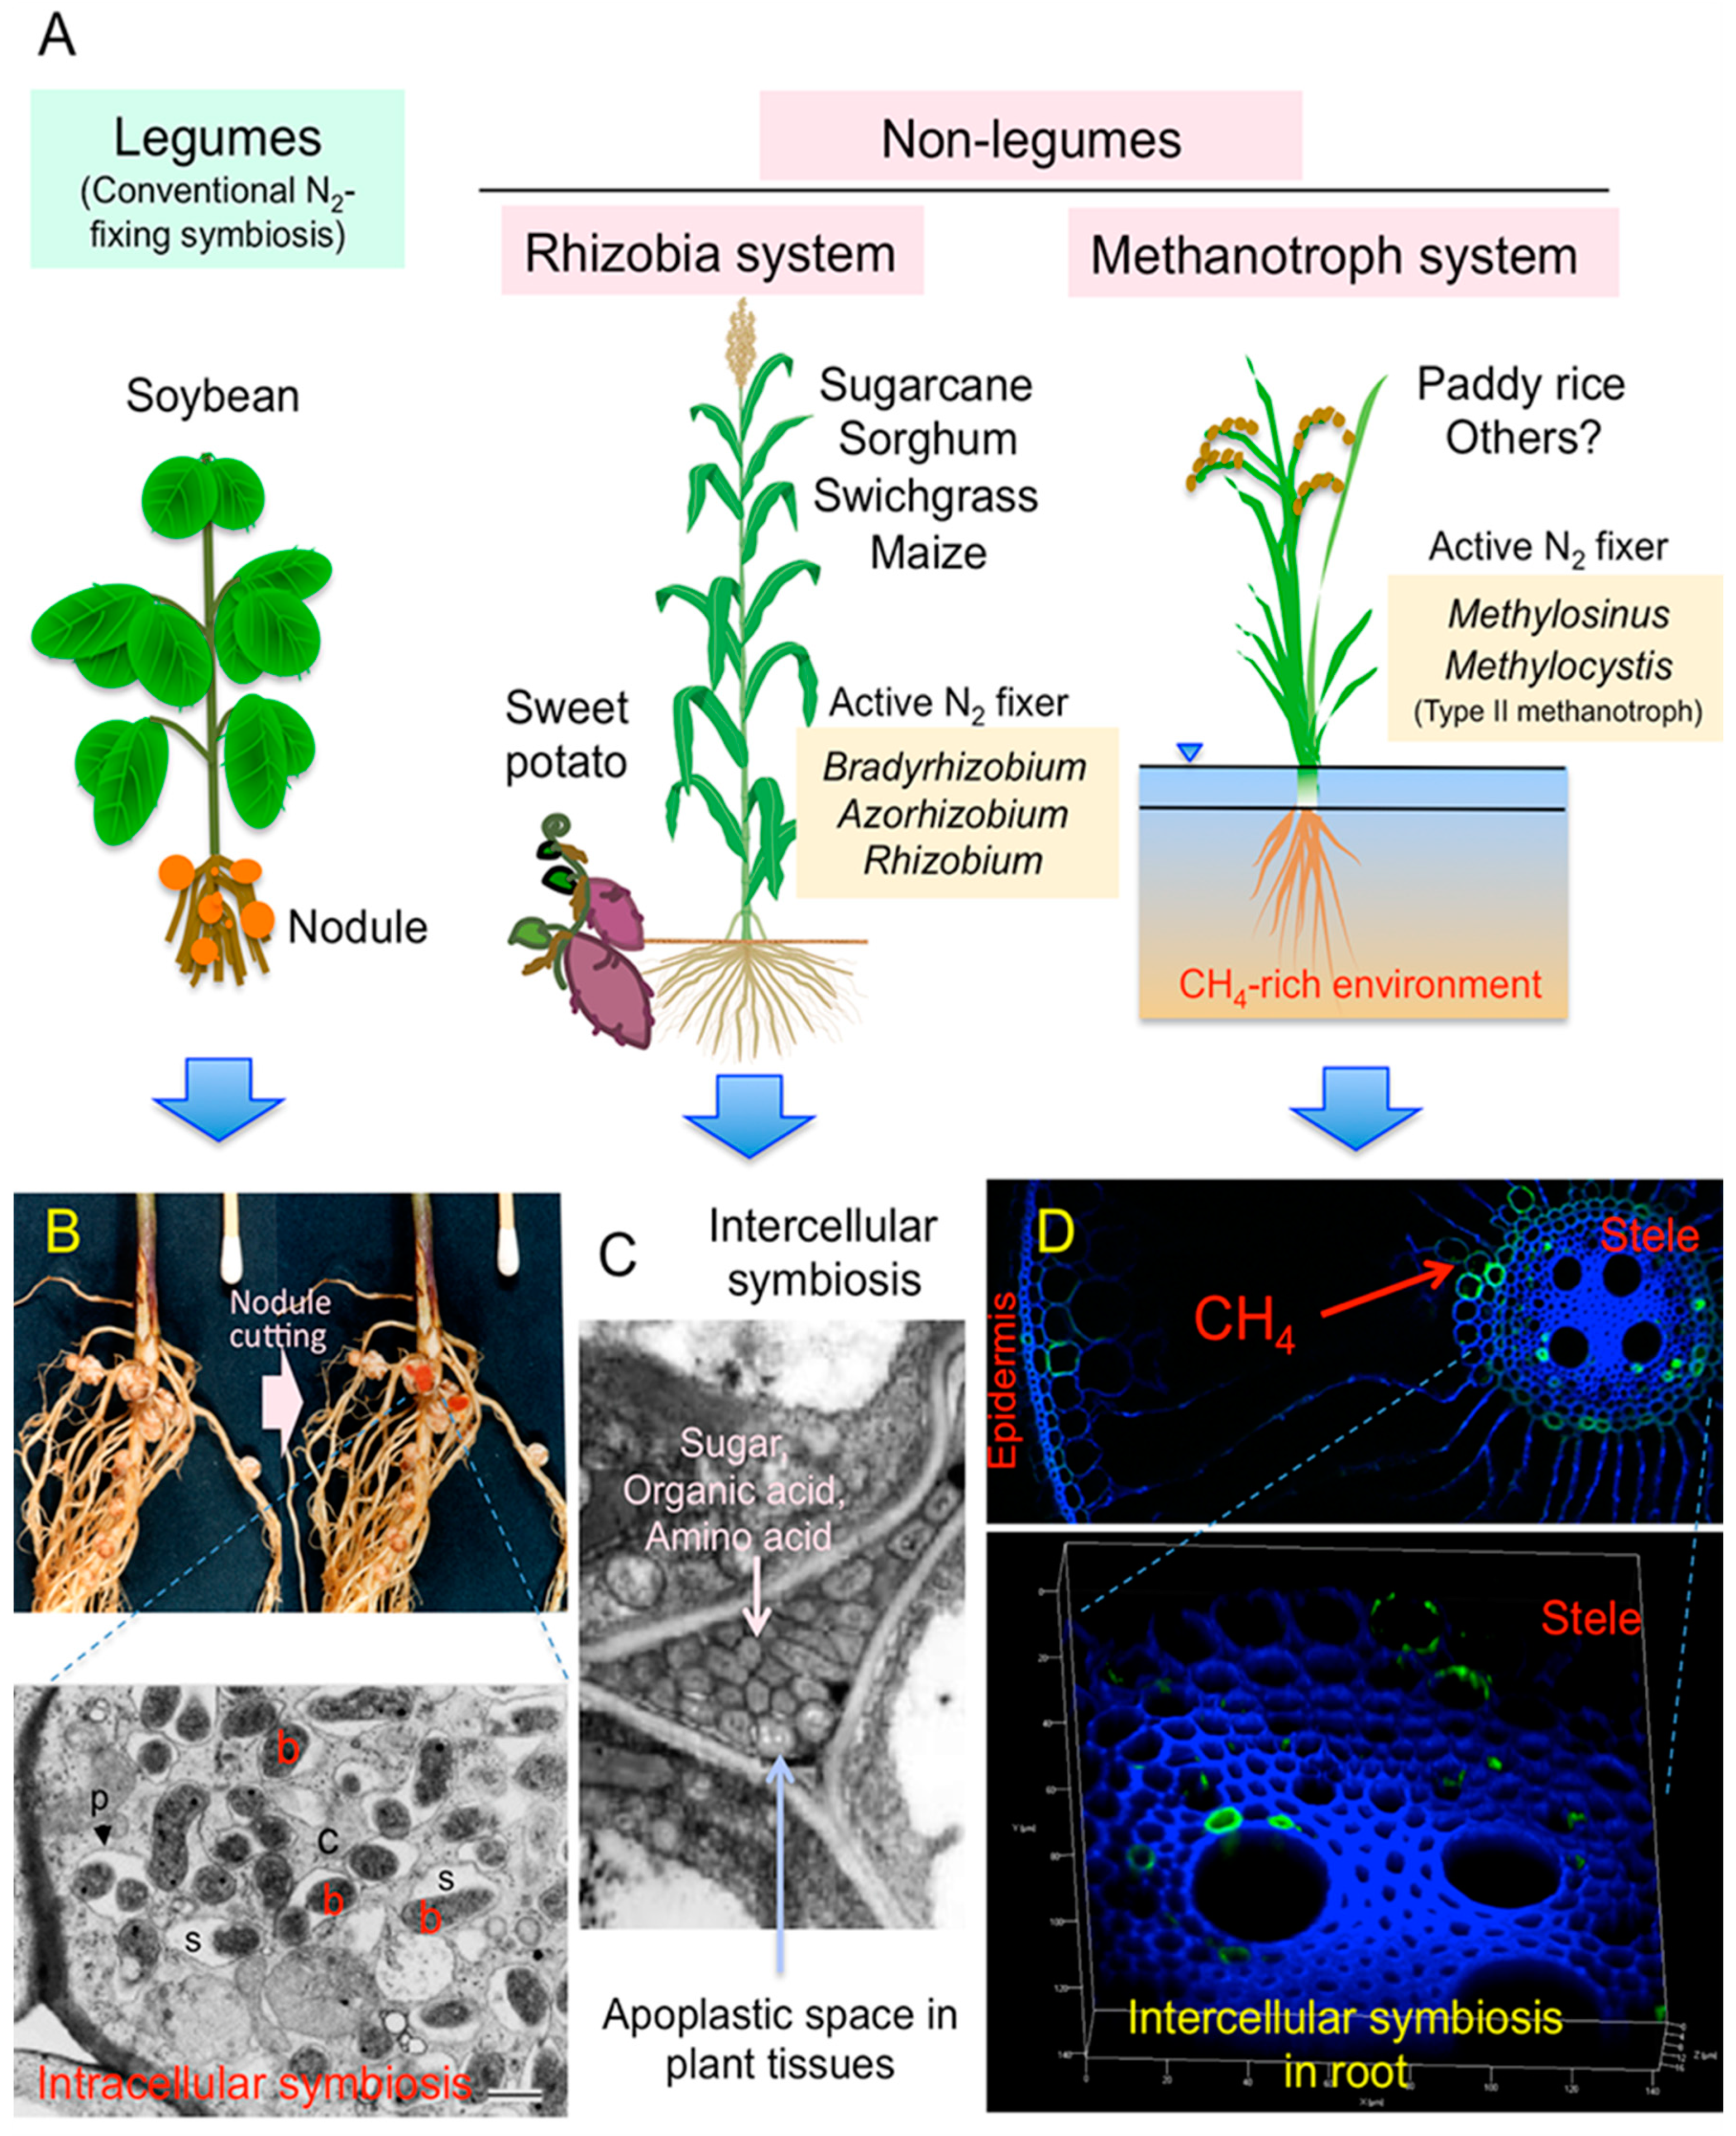 Plants | Free Full-Text | Molecular Analyses of the Distribution and Function of Diazotrophic Rhizobia and Methanotrophs in the Tissues and Rhizosphere of Non-Leguminous Plants | HTML